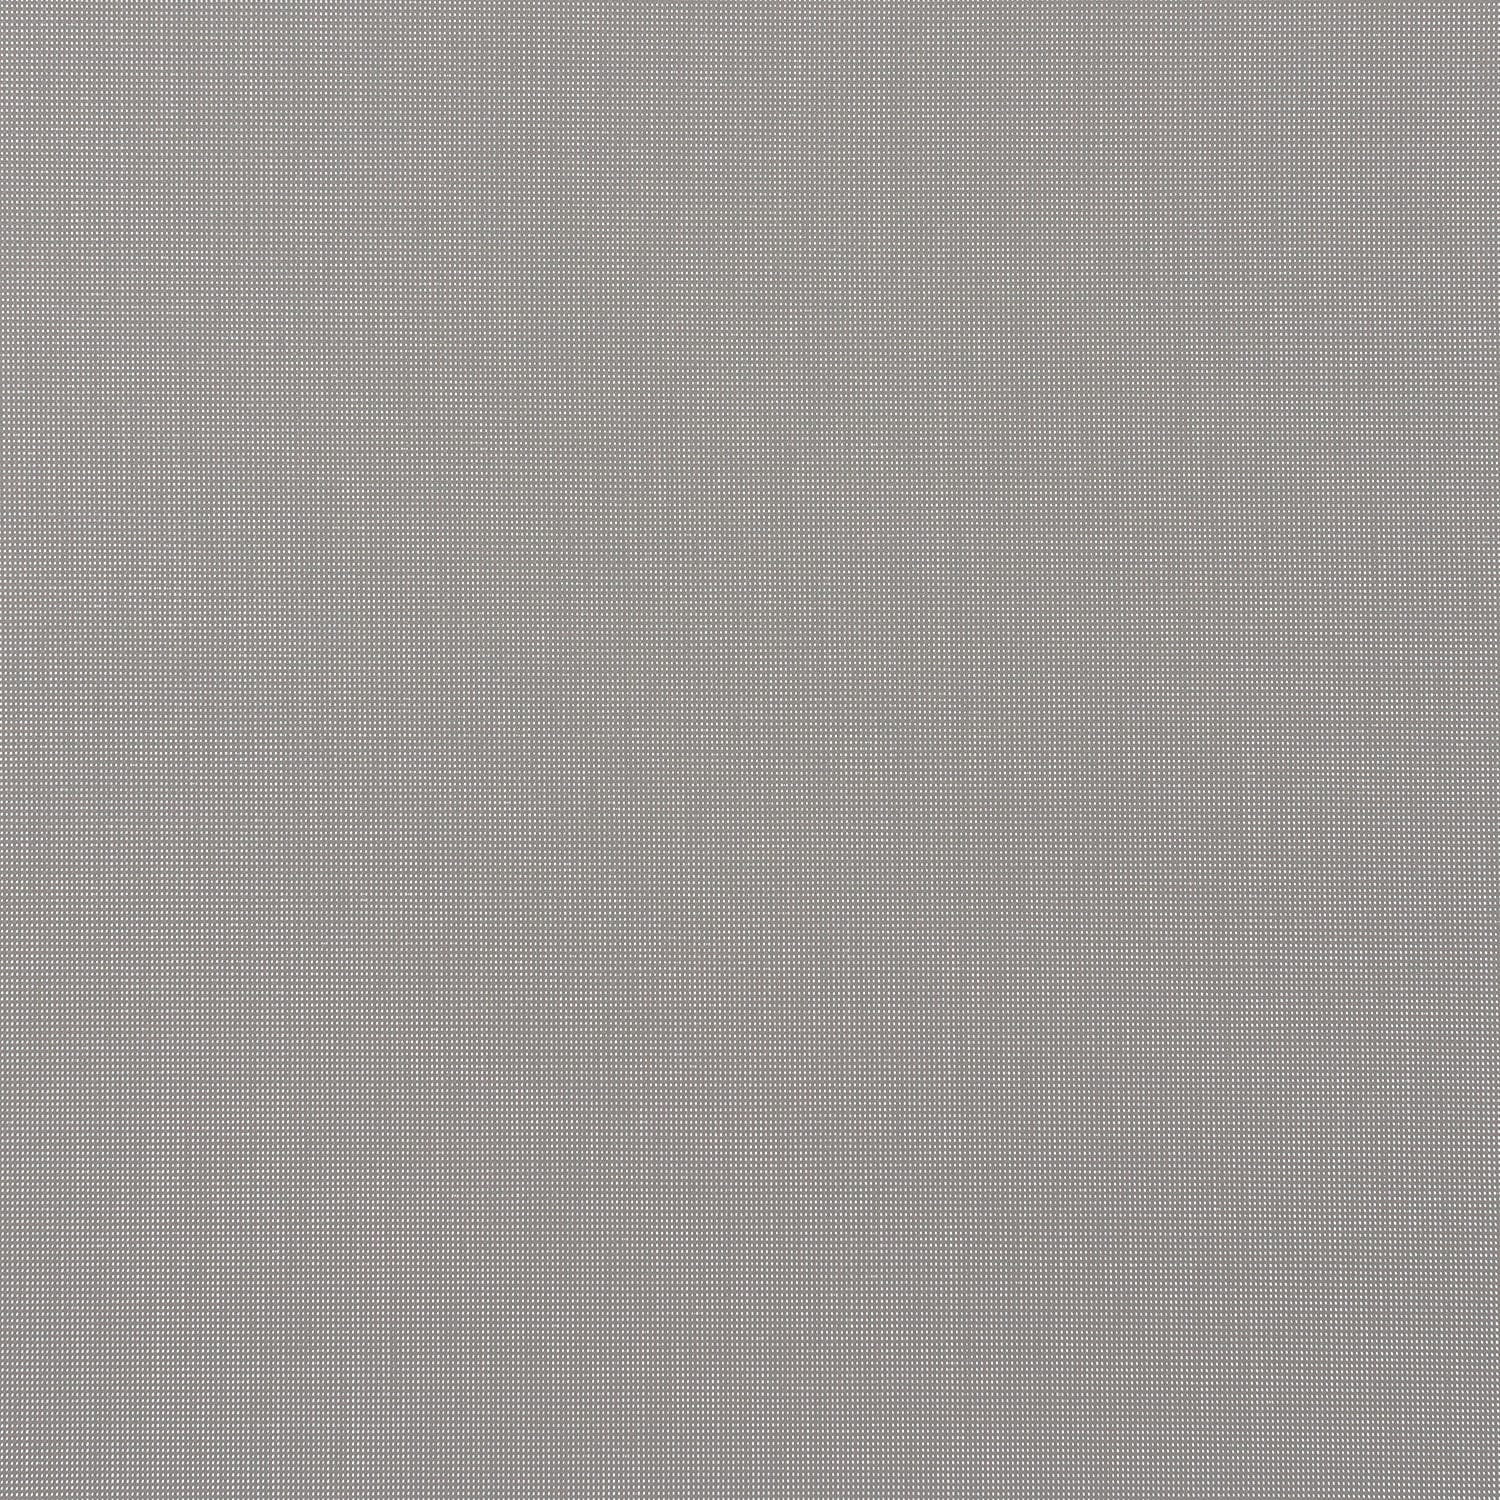 Burbank Grey TabbyWeave Textured Semi Sheer Roller Shade Swatch